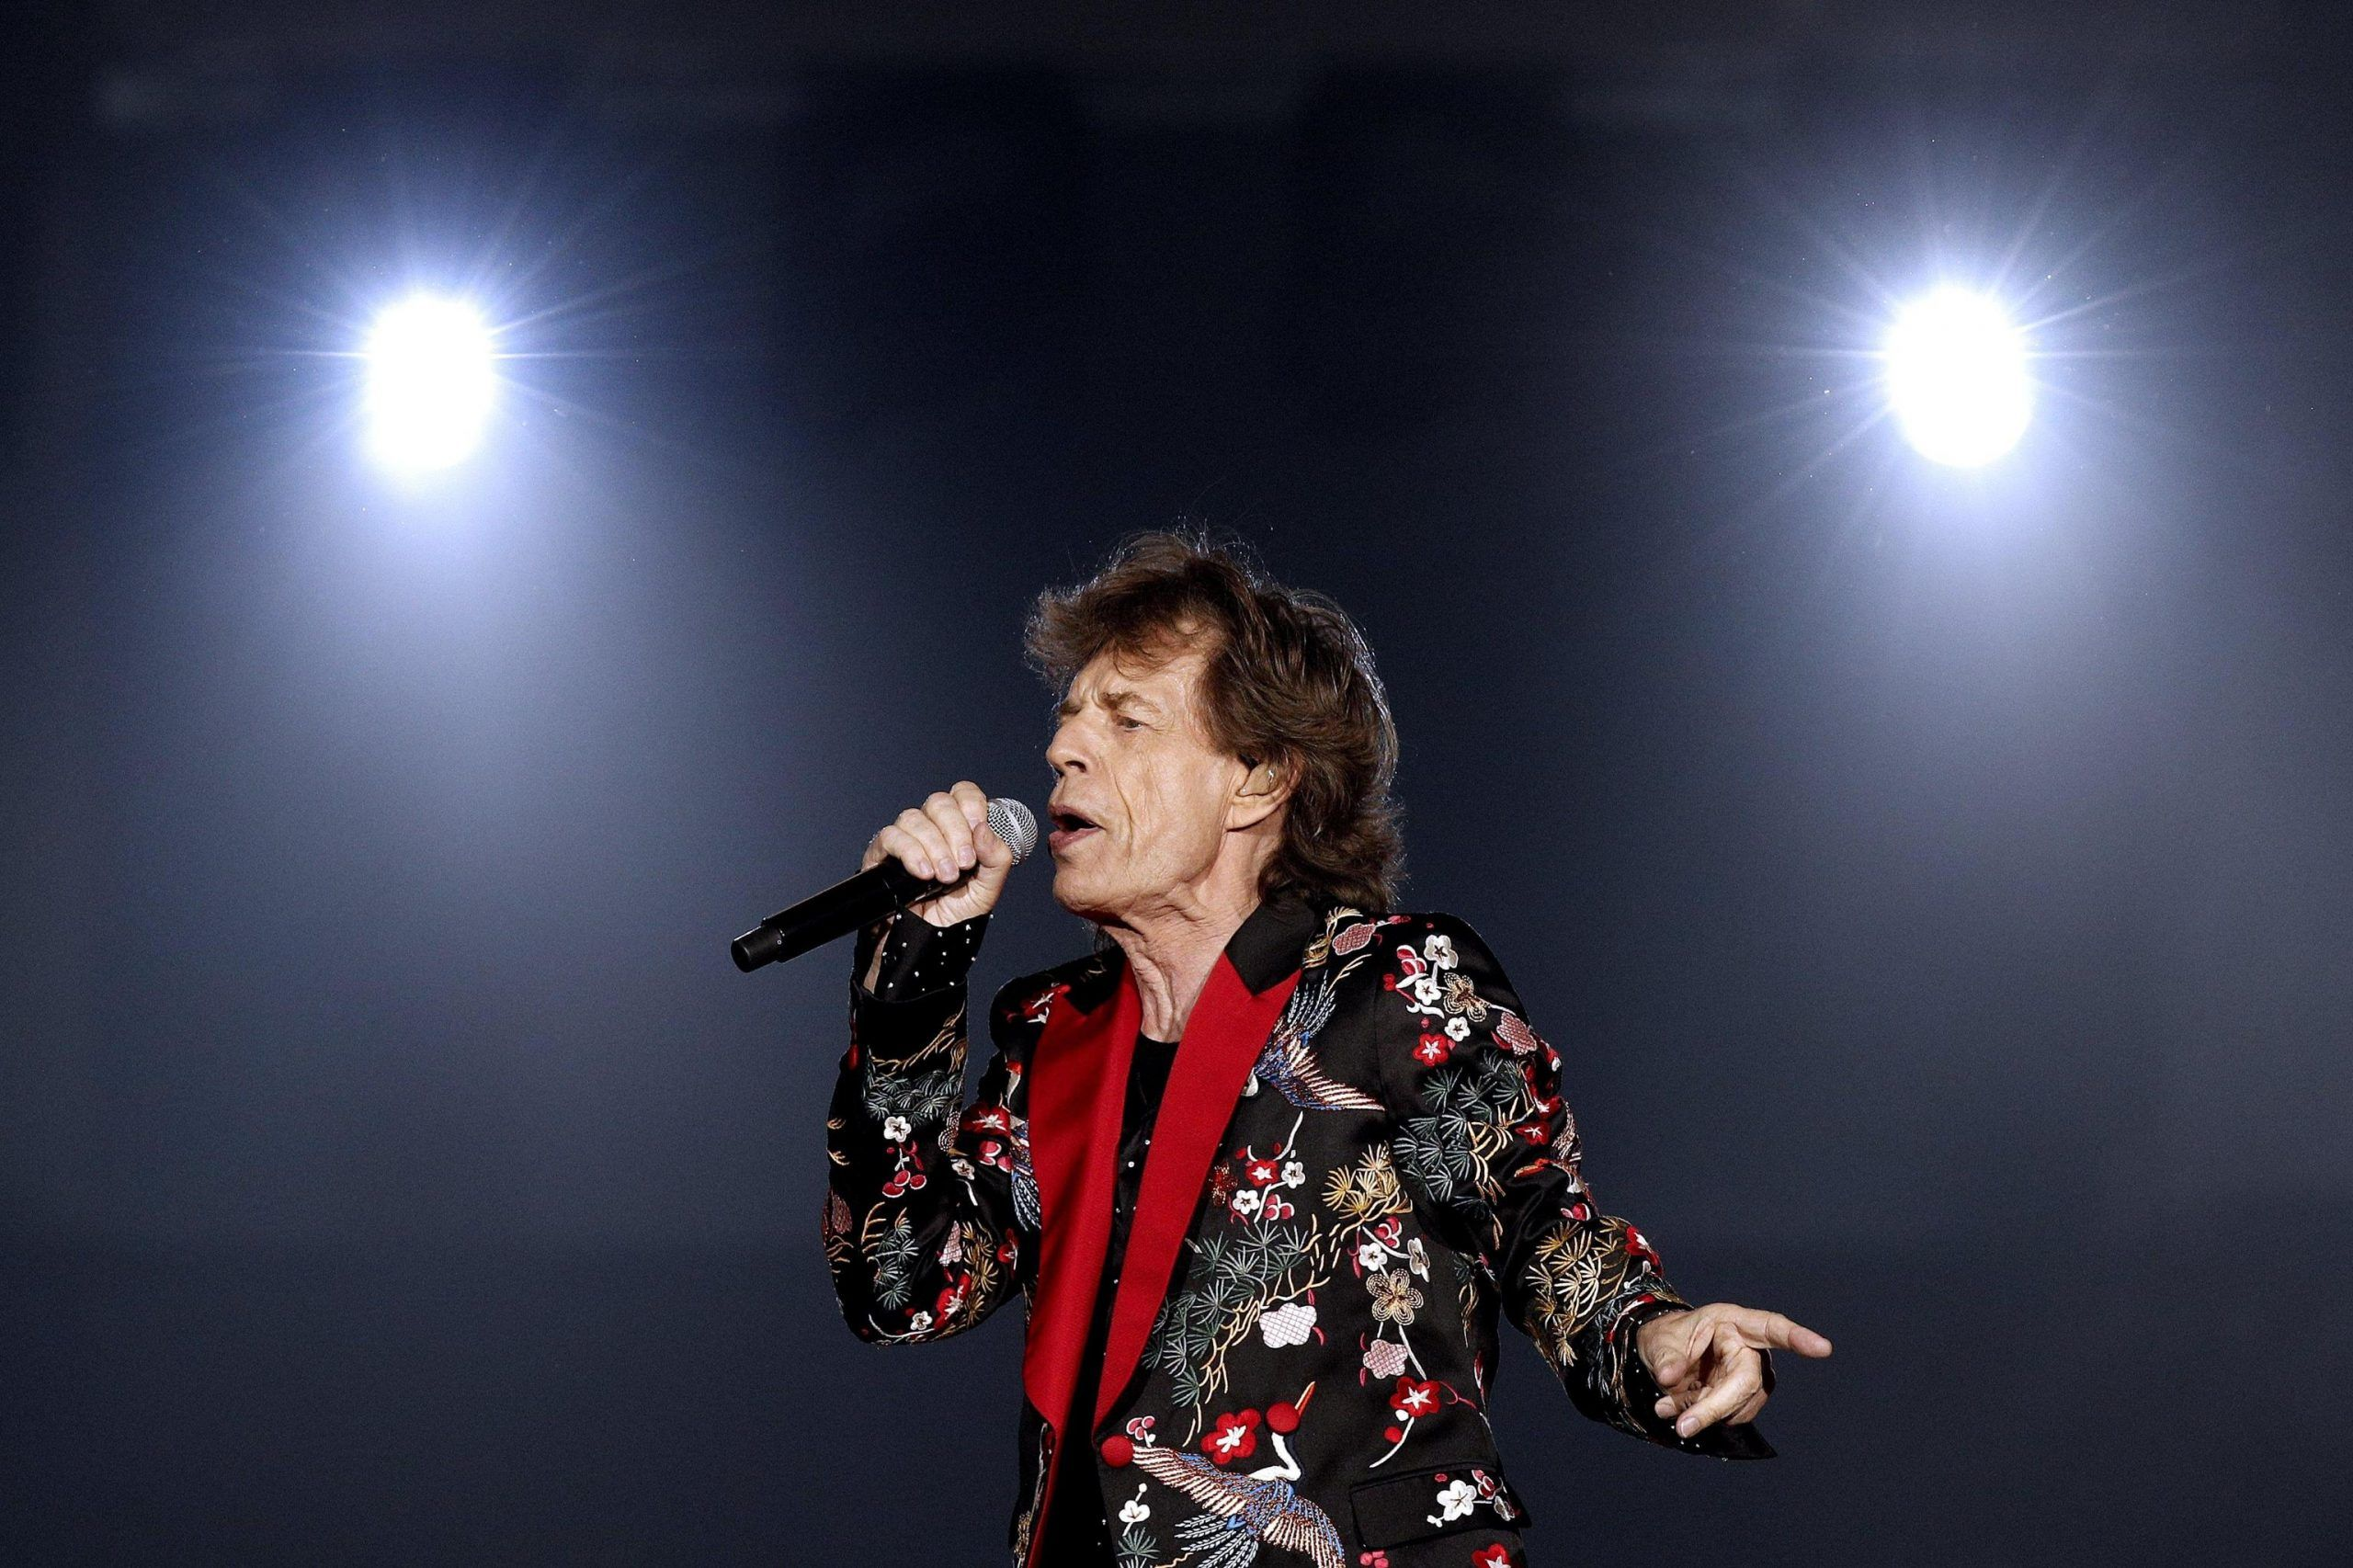 The Rolling Stones concert in France